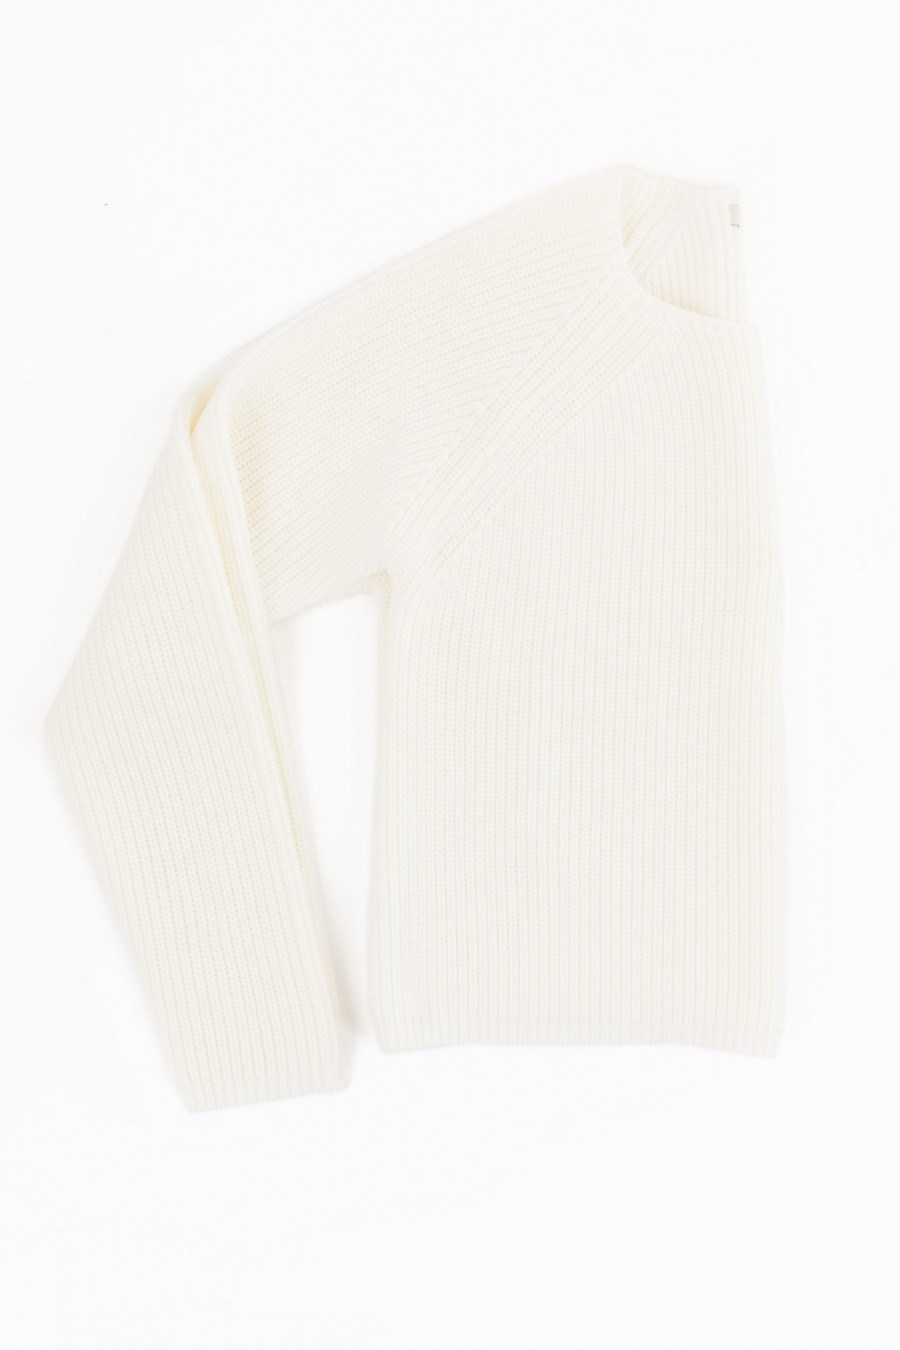 Maglioncino cropped bianco